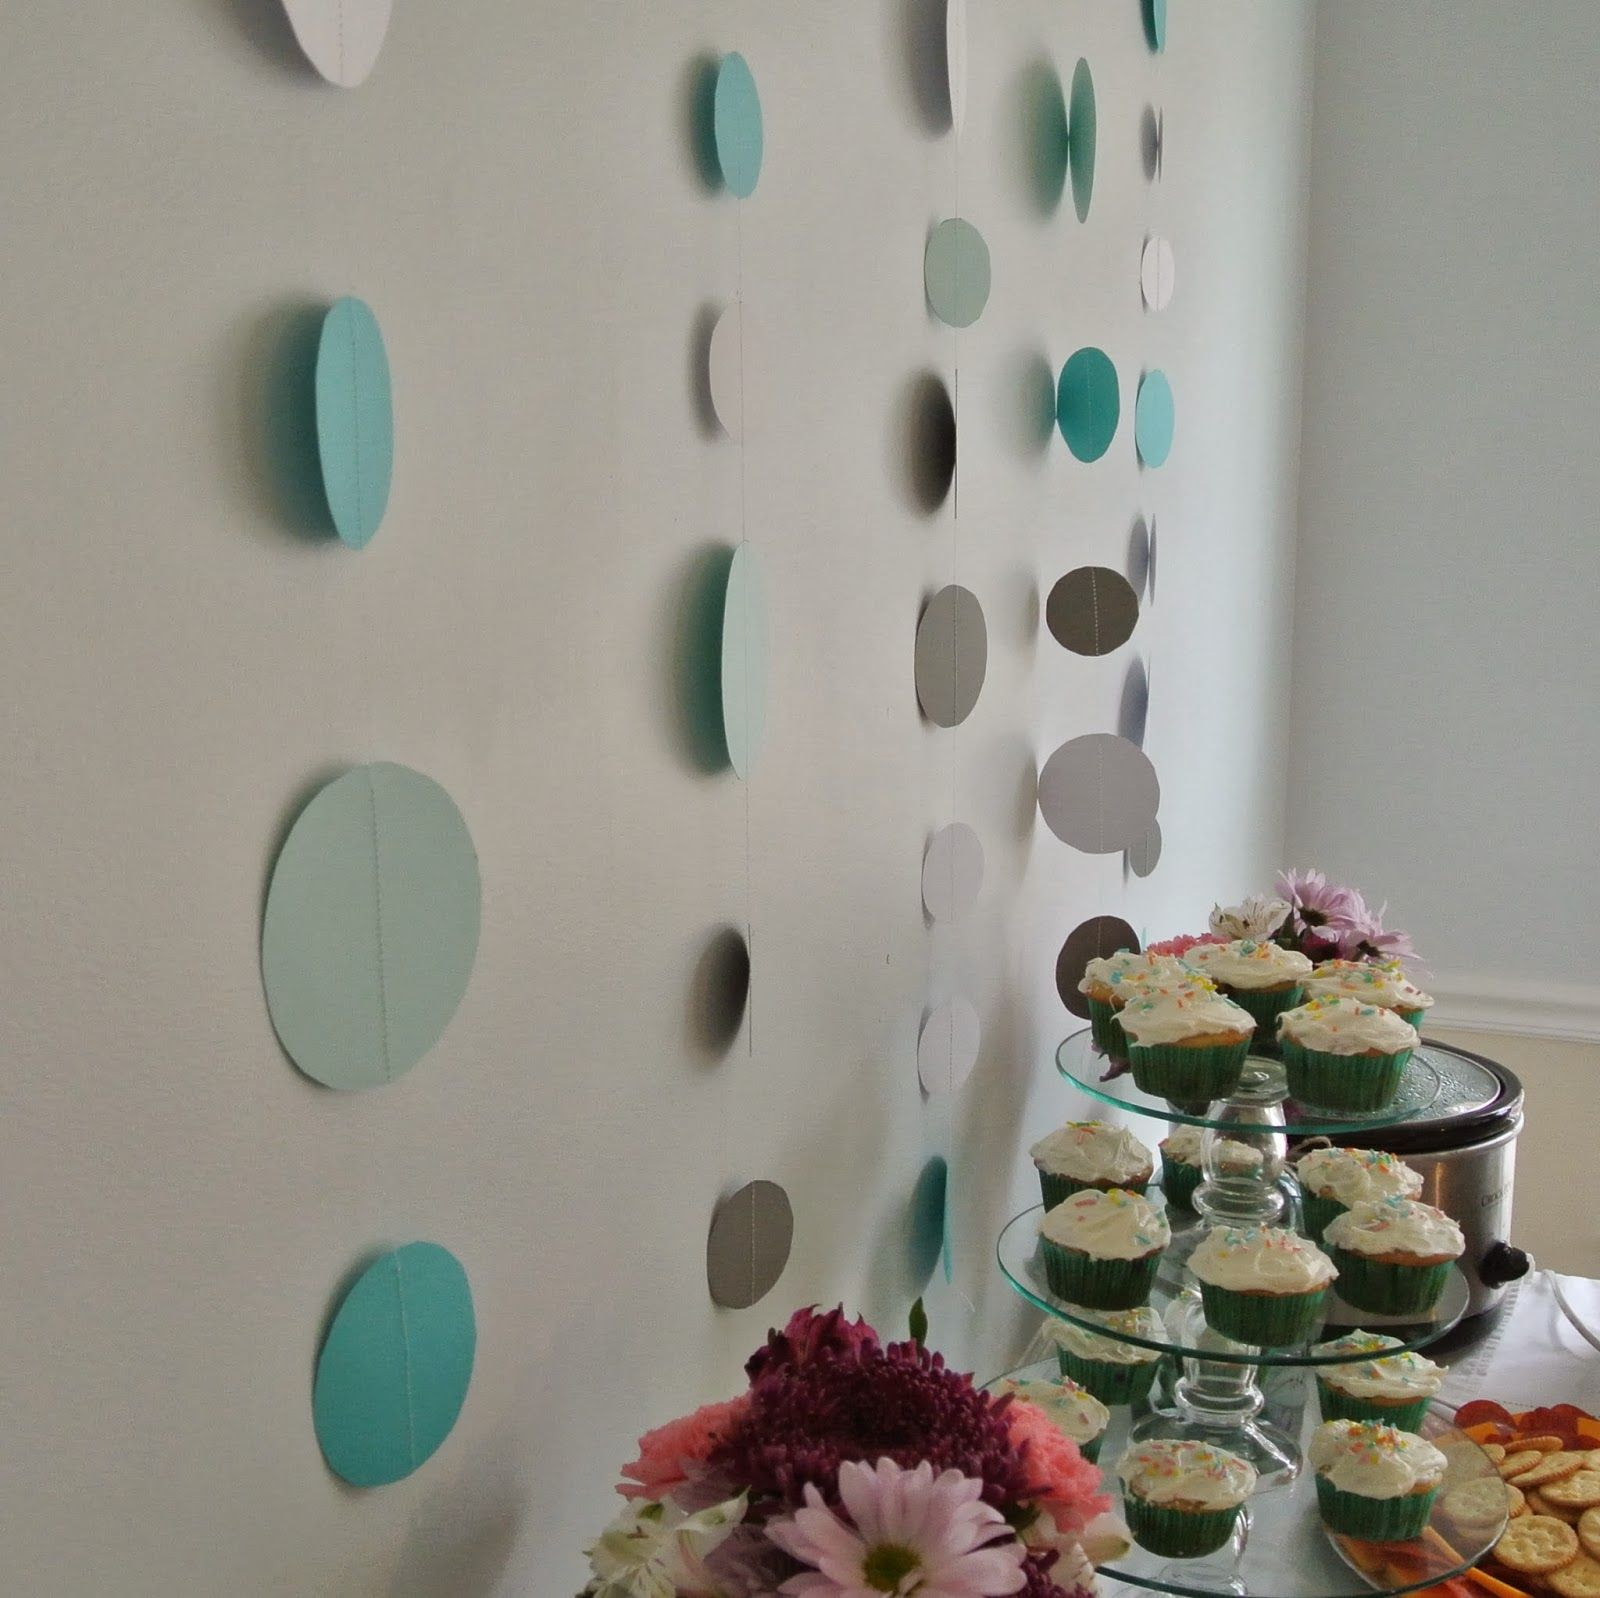 Baby shower ideas on a budget babyshowerdecorationseasy baby shower ideas on a budget babyshowerdecorations junglespirit Images